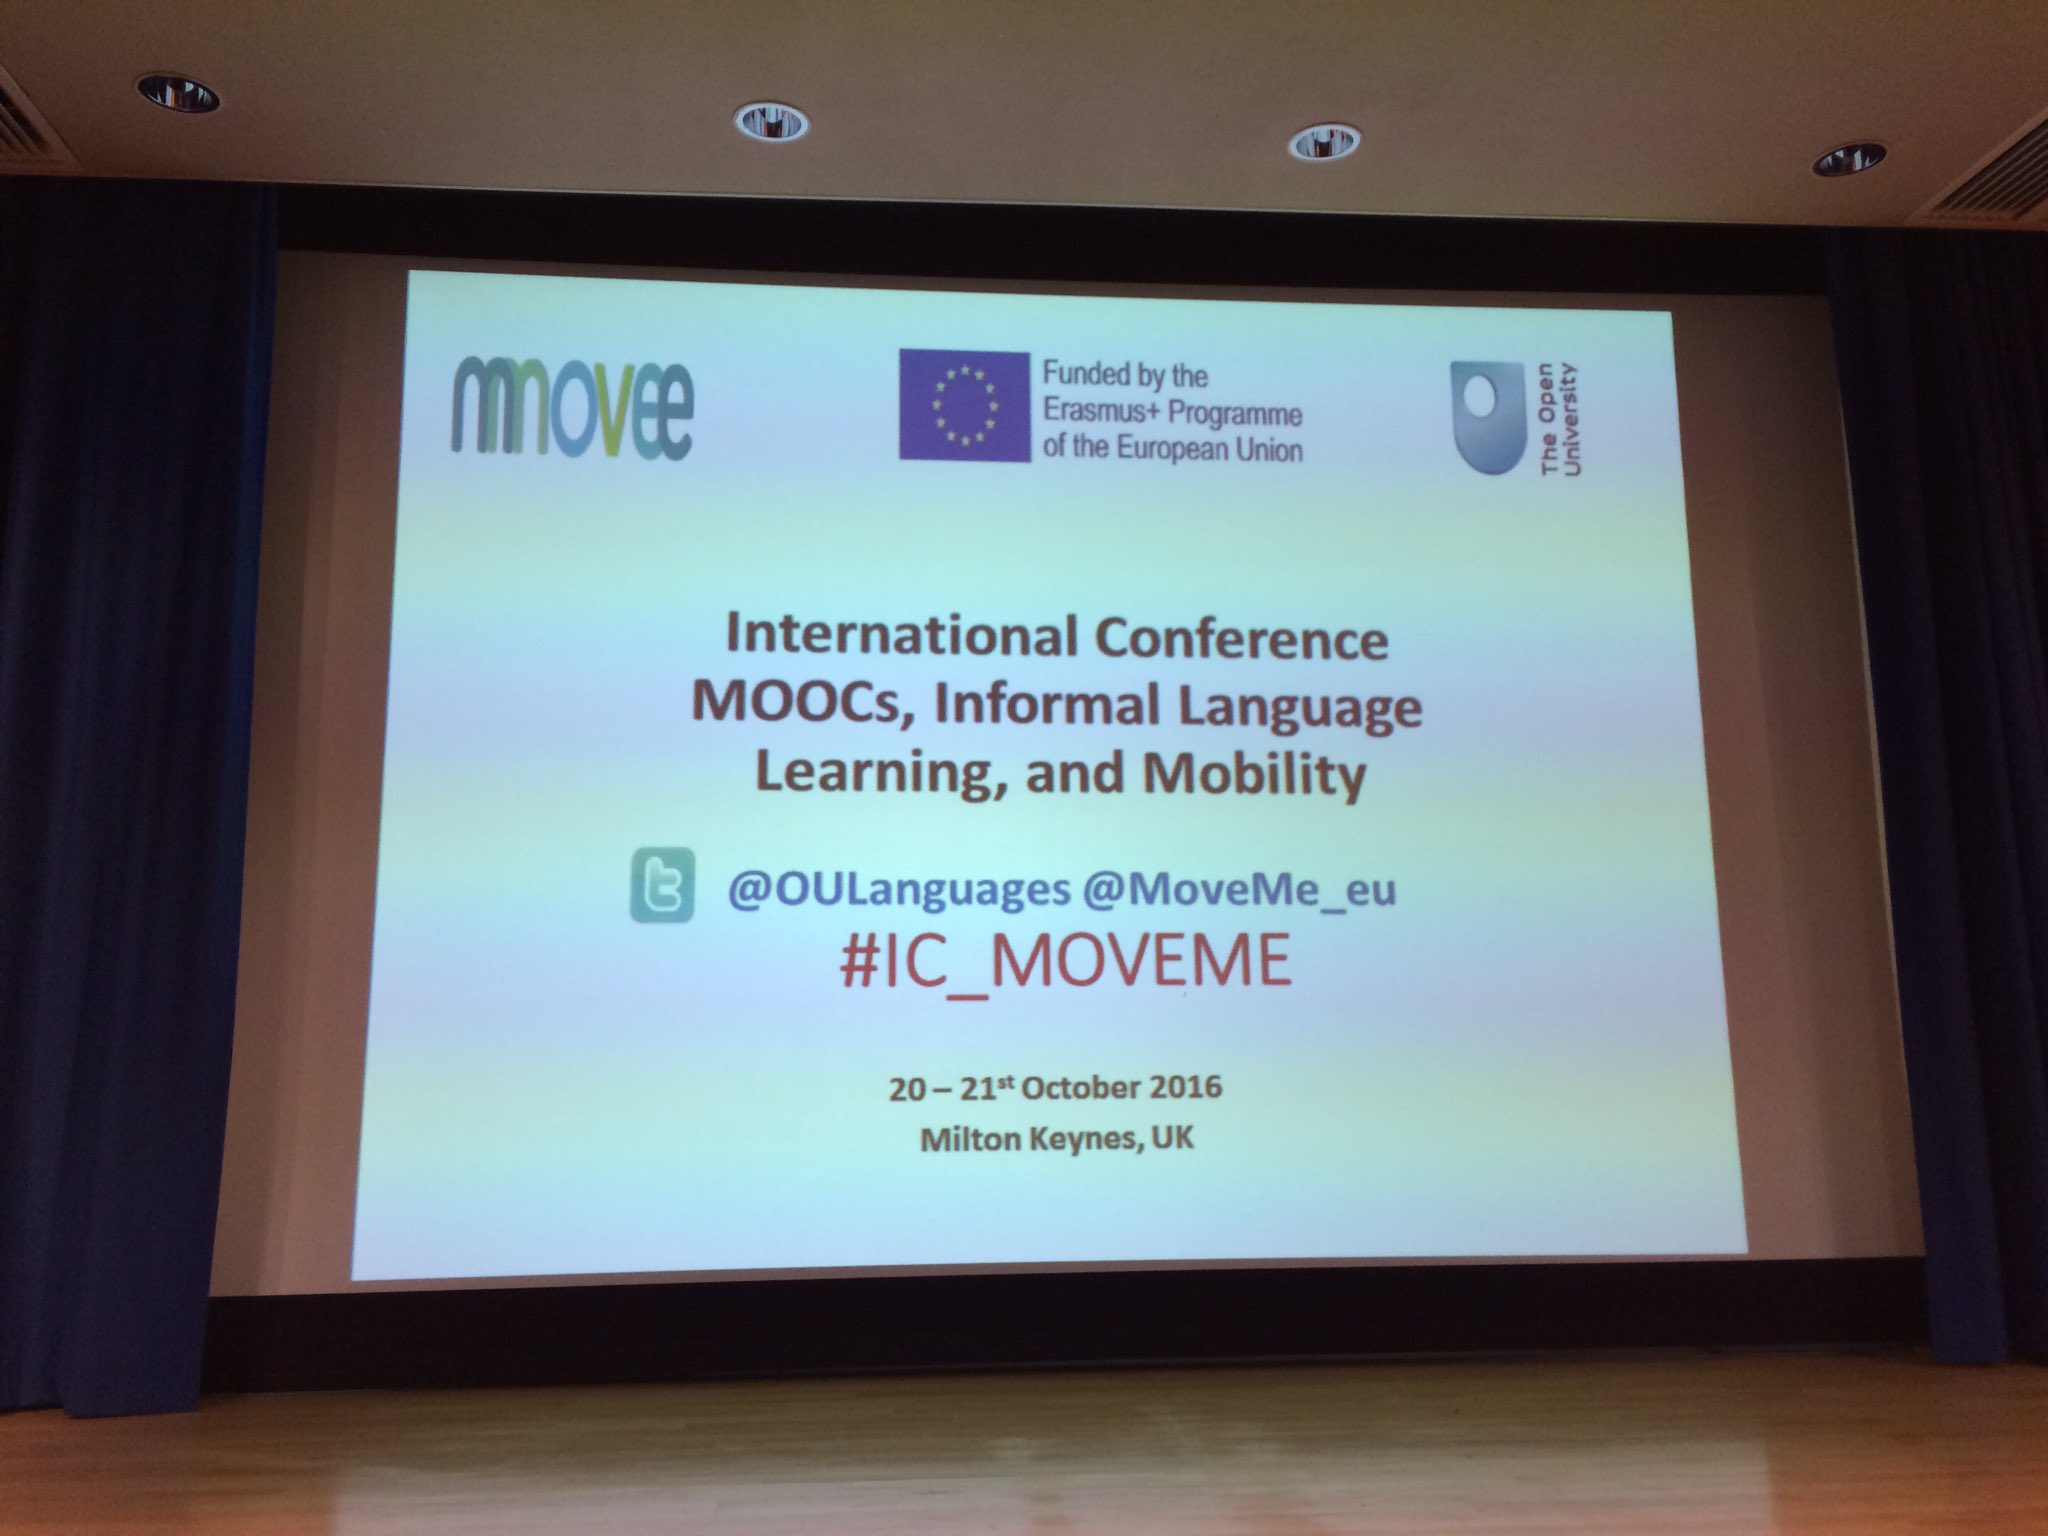 Live-tweeting about to begin. Excited to finally be visiting the Open University, home of so many excellent colleagues in CALL. #IC_MOVEME https://t.co/y9liIPgPmy